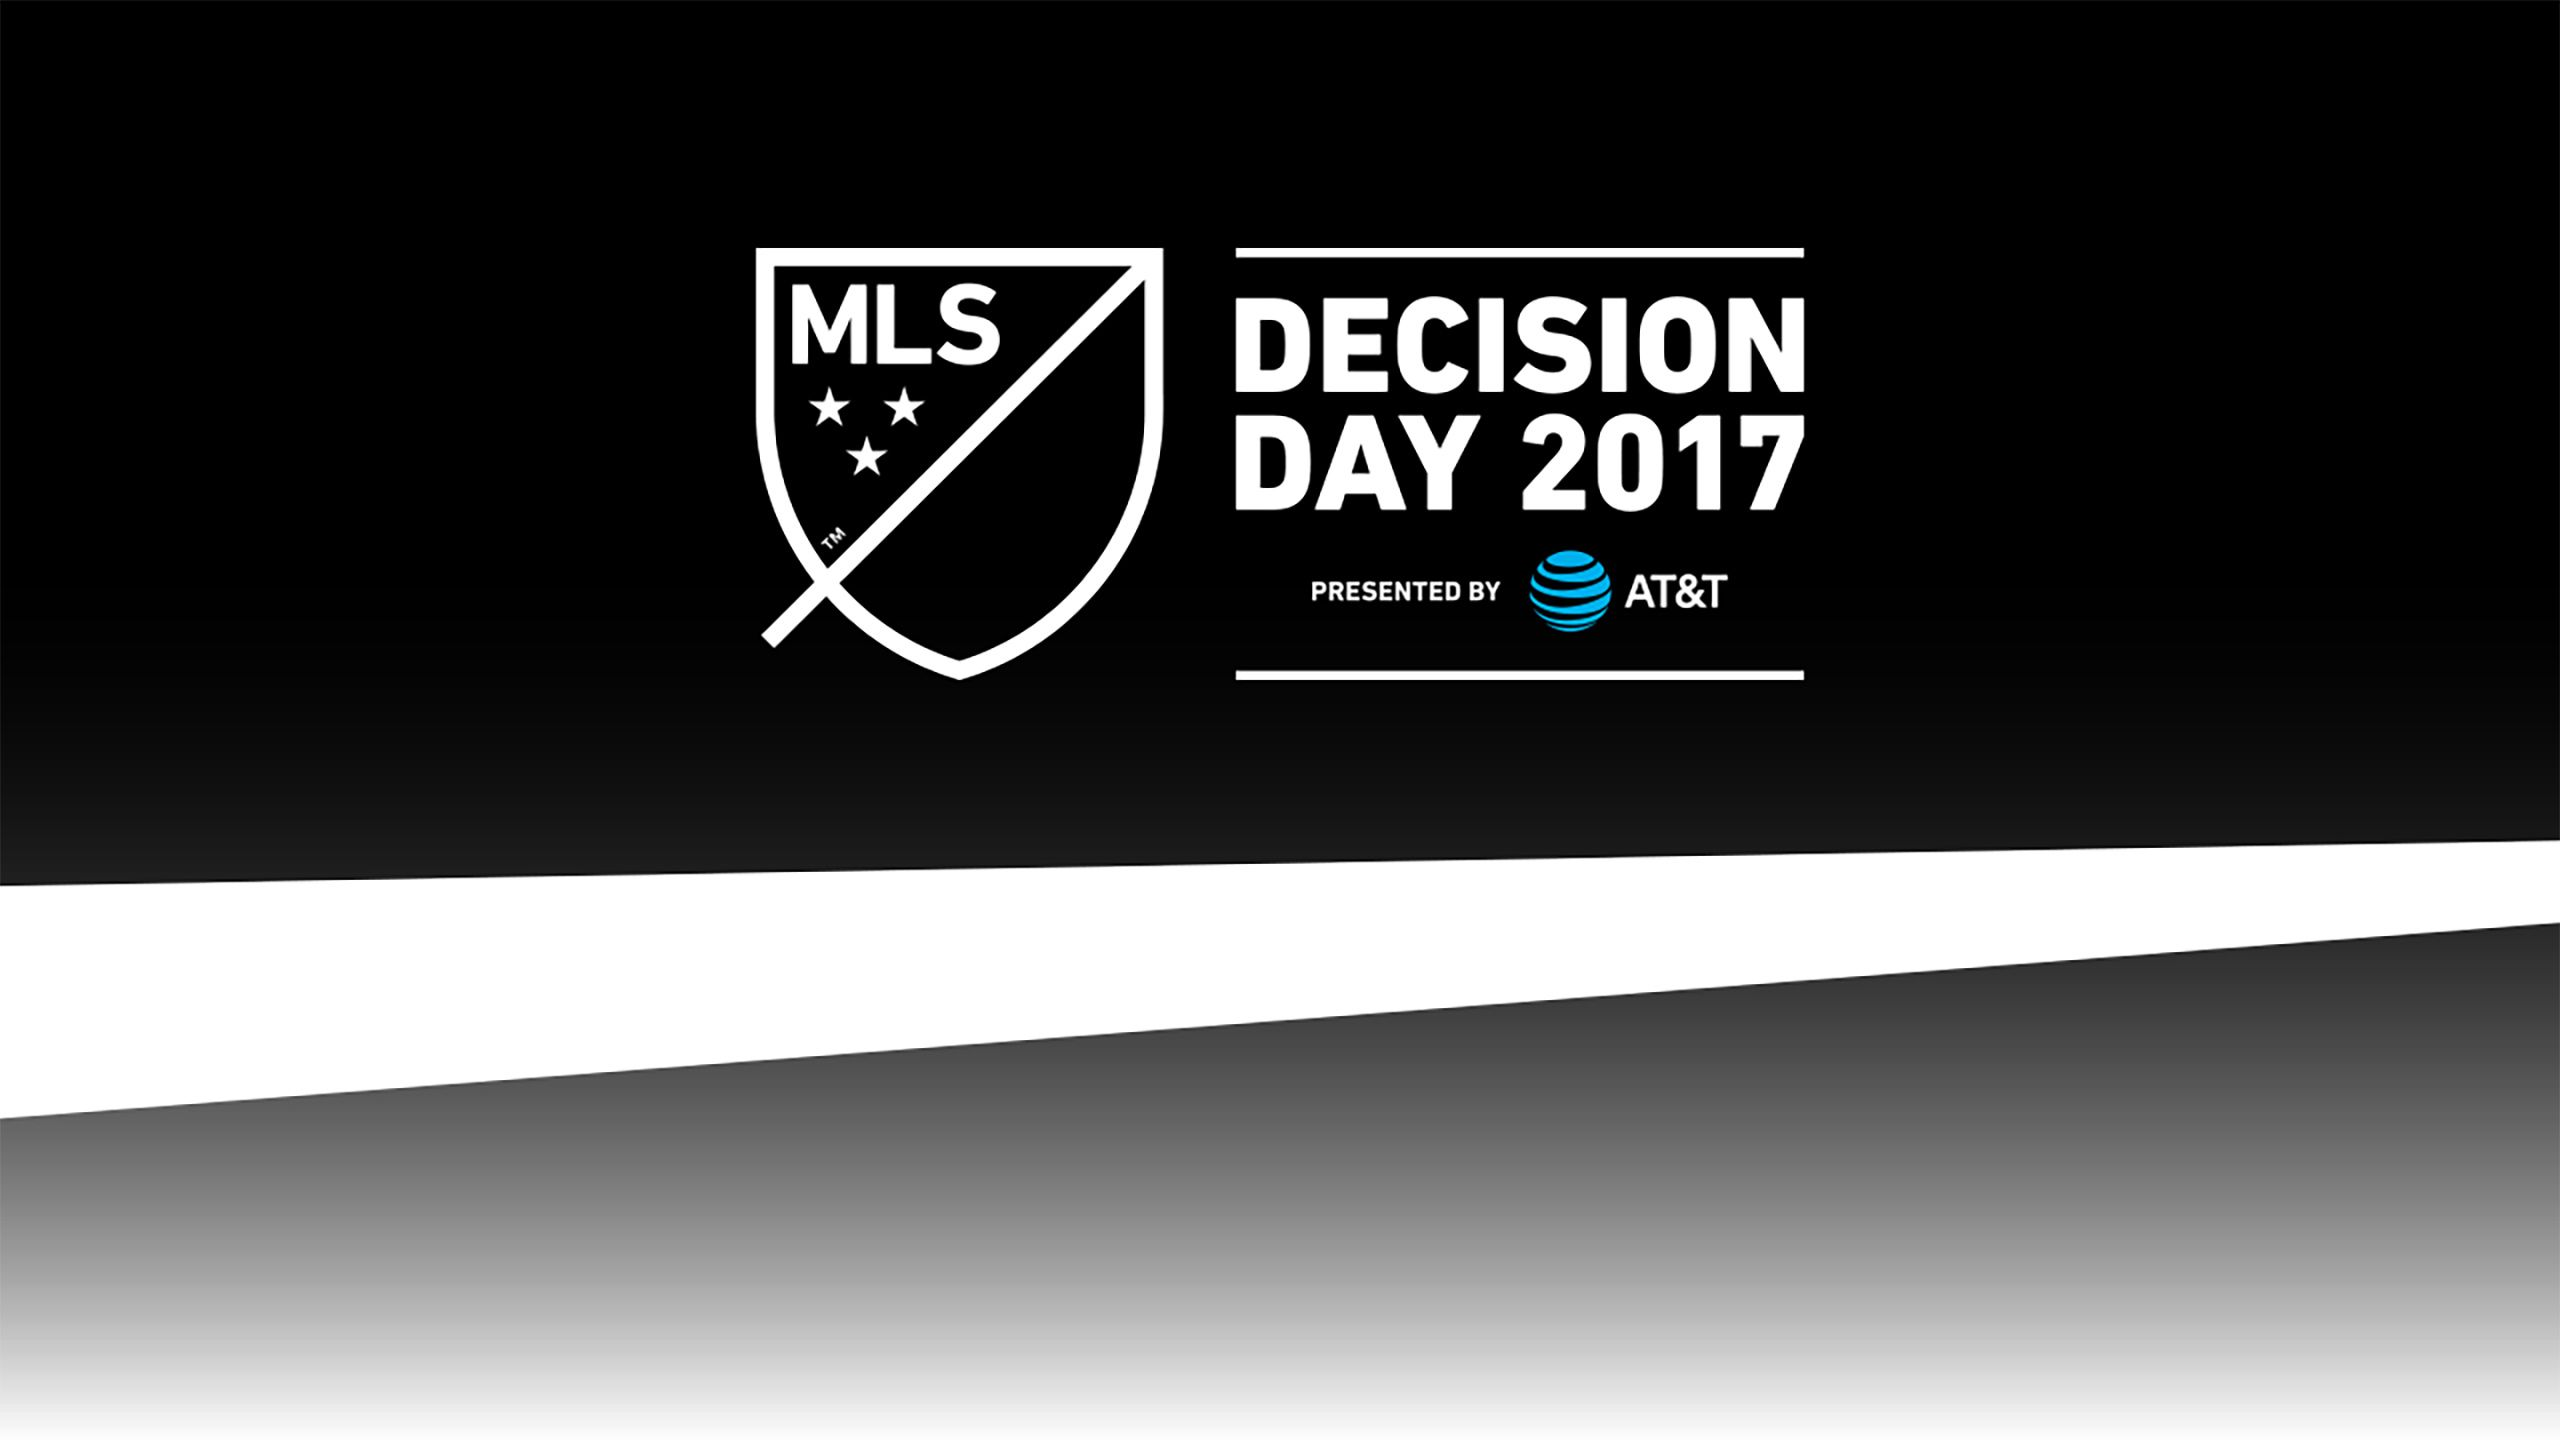 2017 MLS Decision Day Presented by AT&T: Major League Soccer presented by Audi